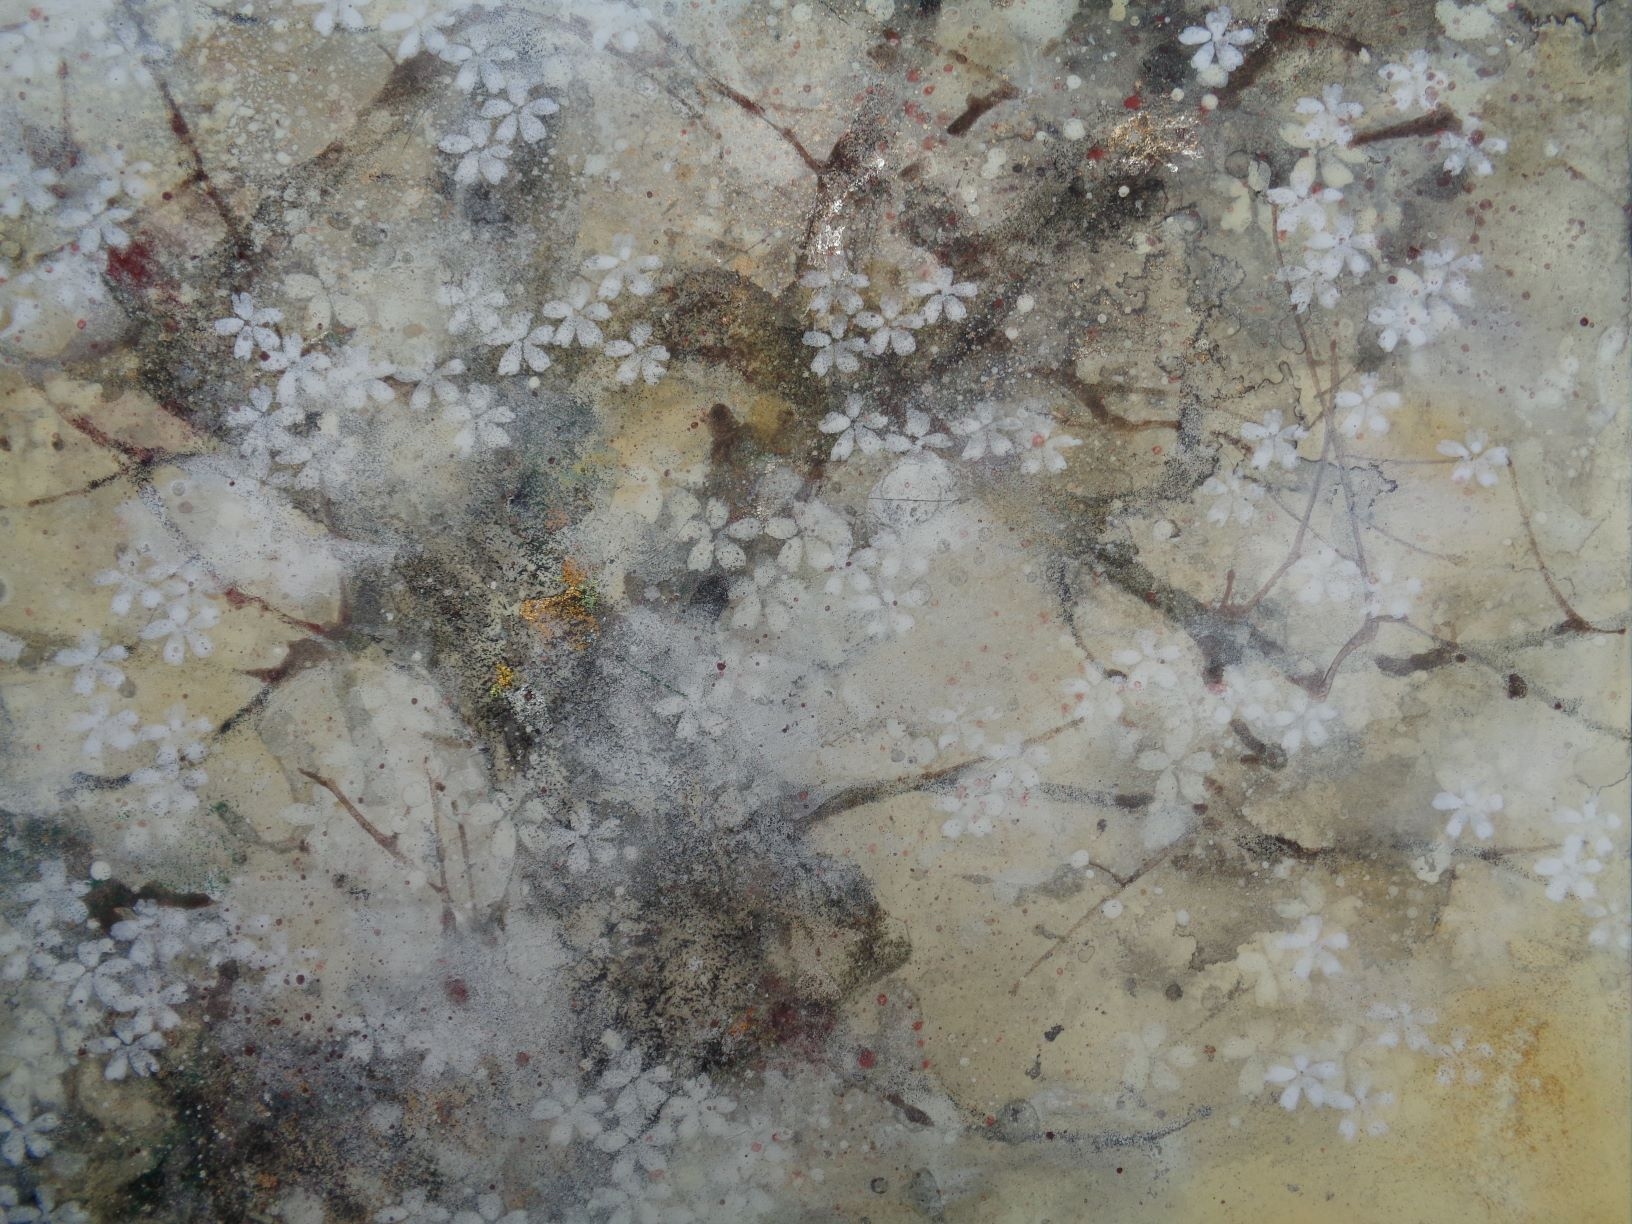 Saison du cerisier,Chen Yiching,Peinture contemporaine, detail 2